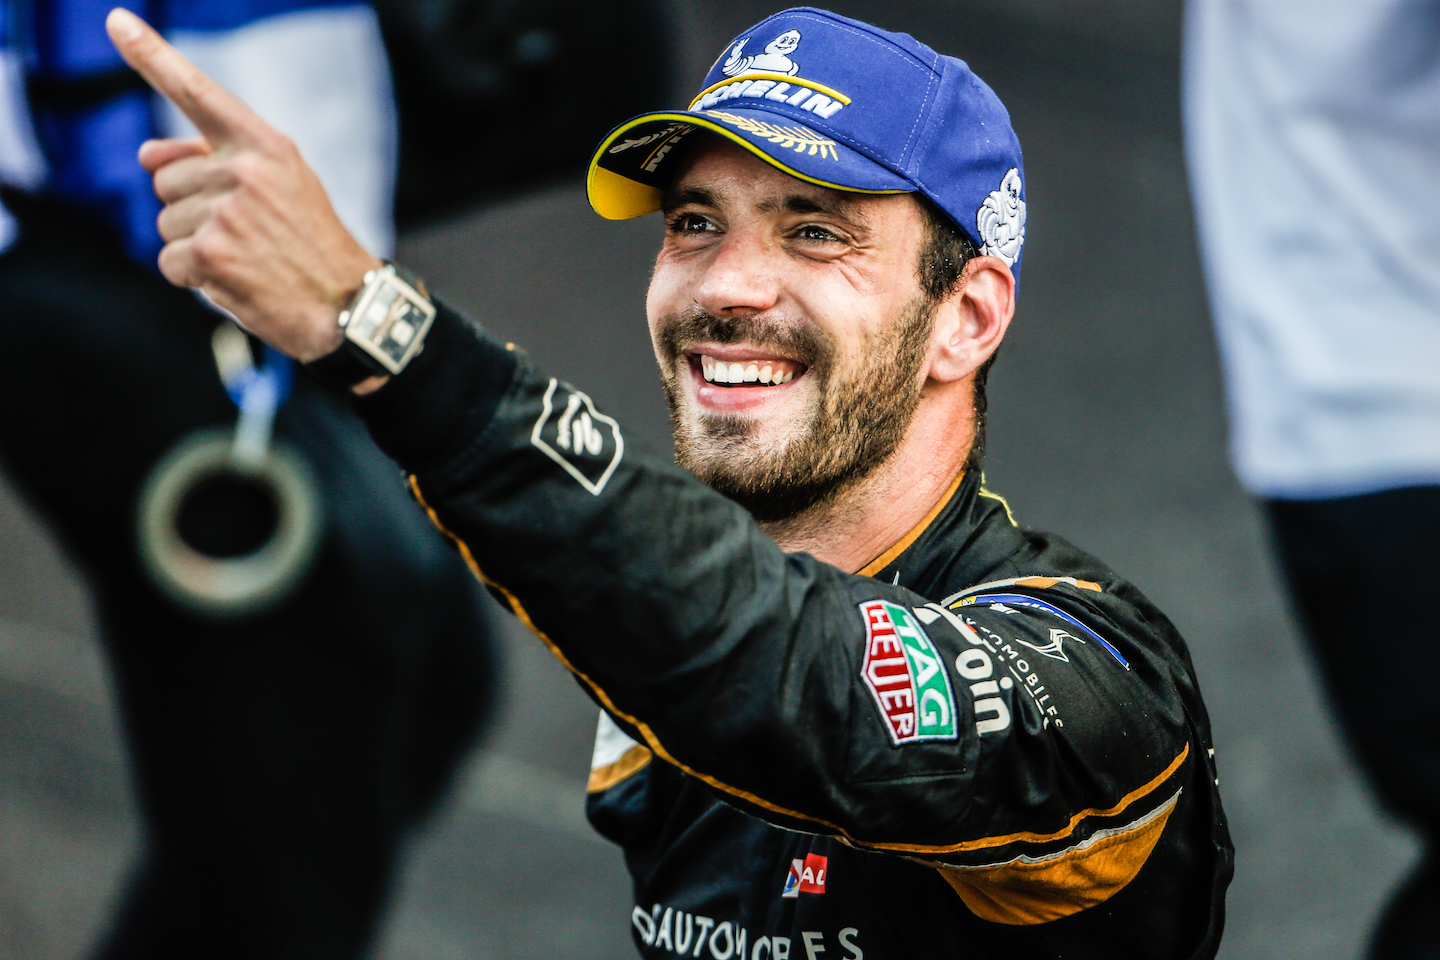 jean-eric vergne wins in the monaco formula e